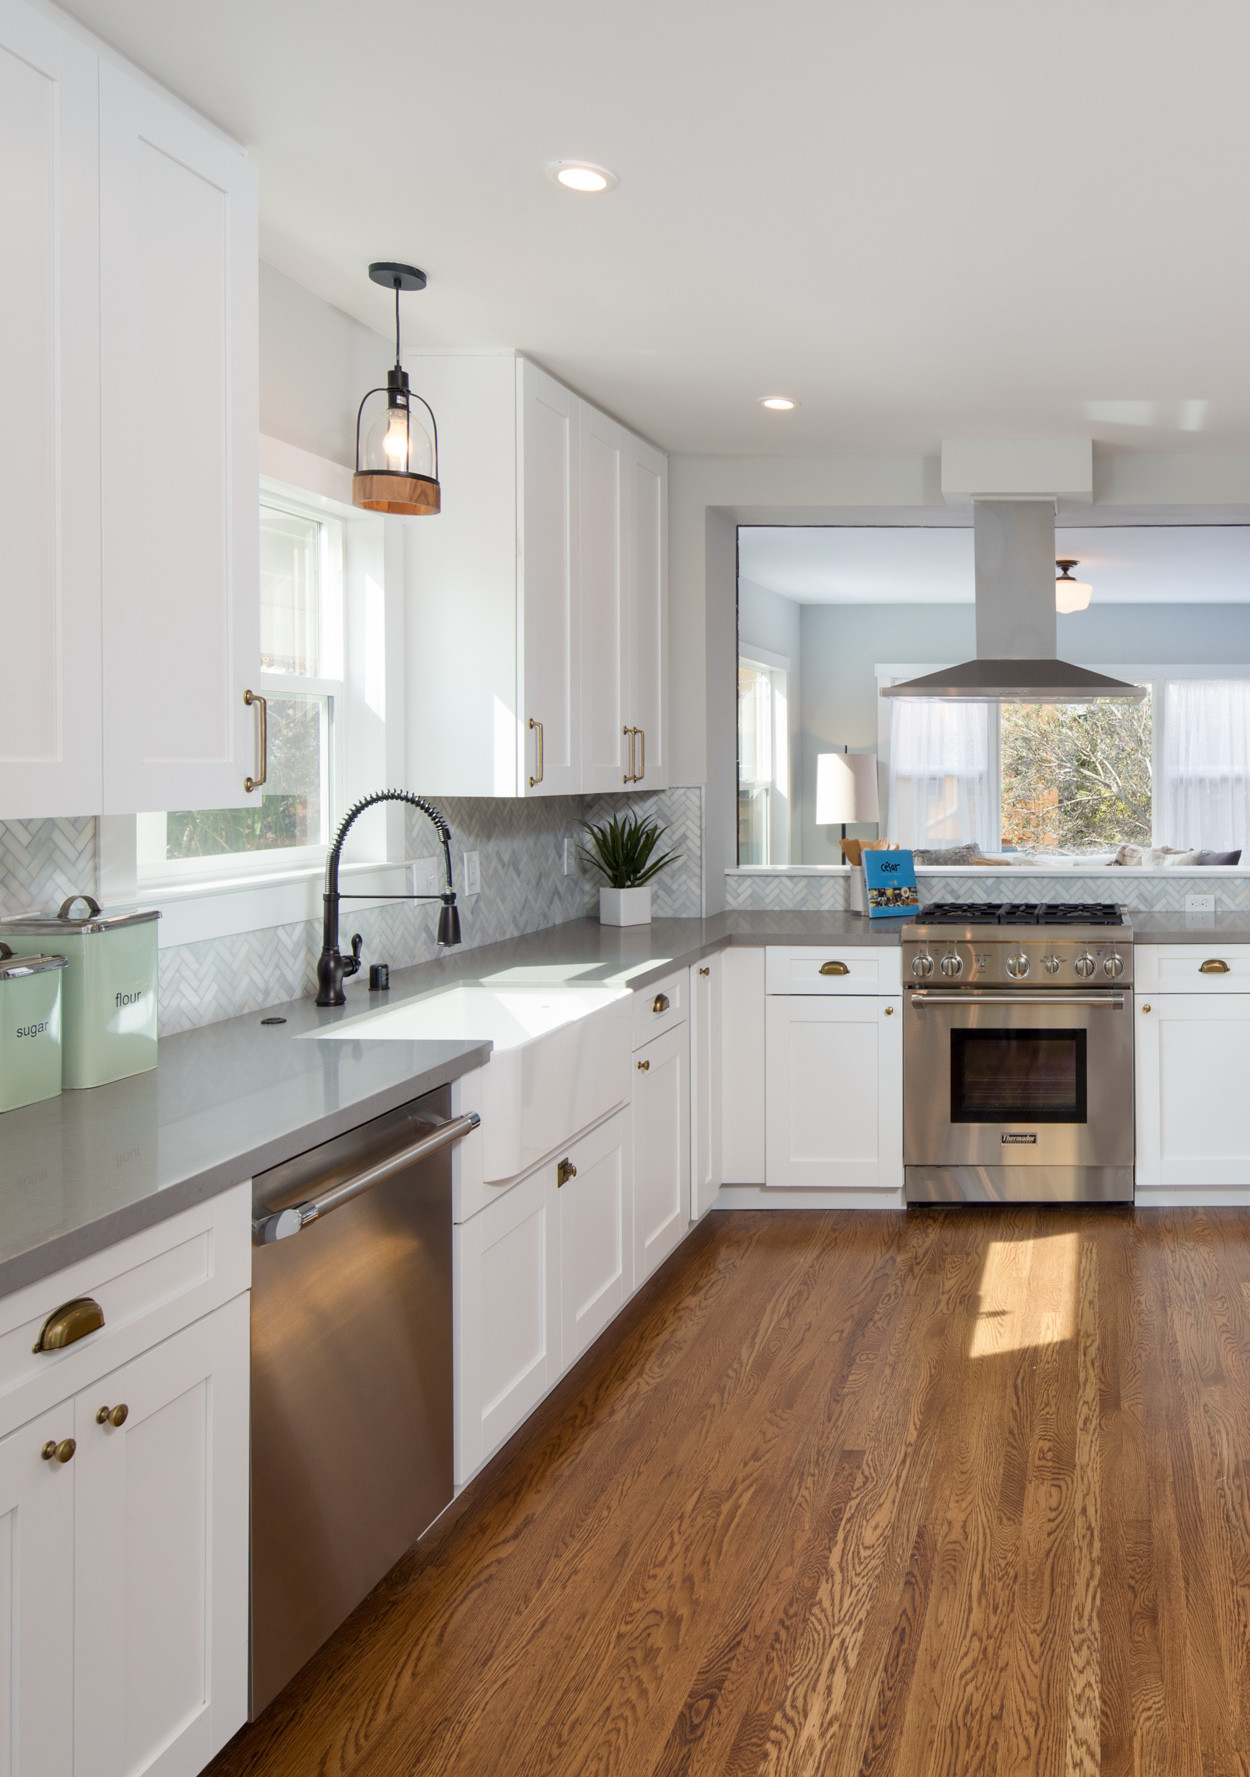 Tips For Kitchen Color Ideas: Farmhouse-Inspired White Kitchen Ideas